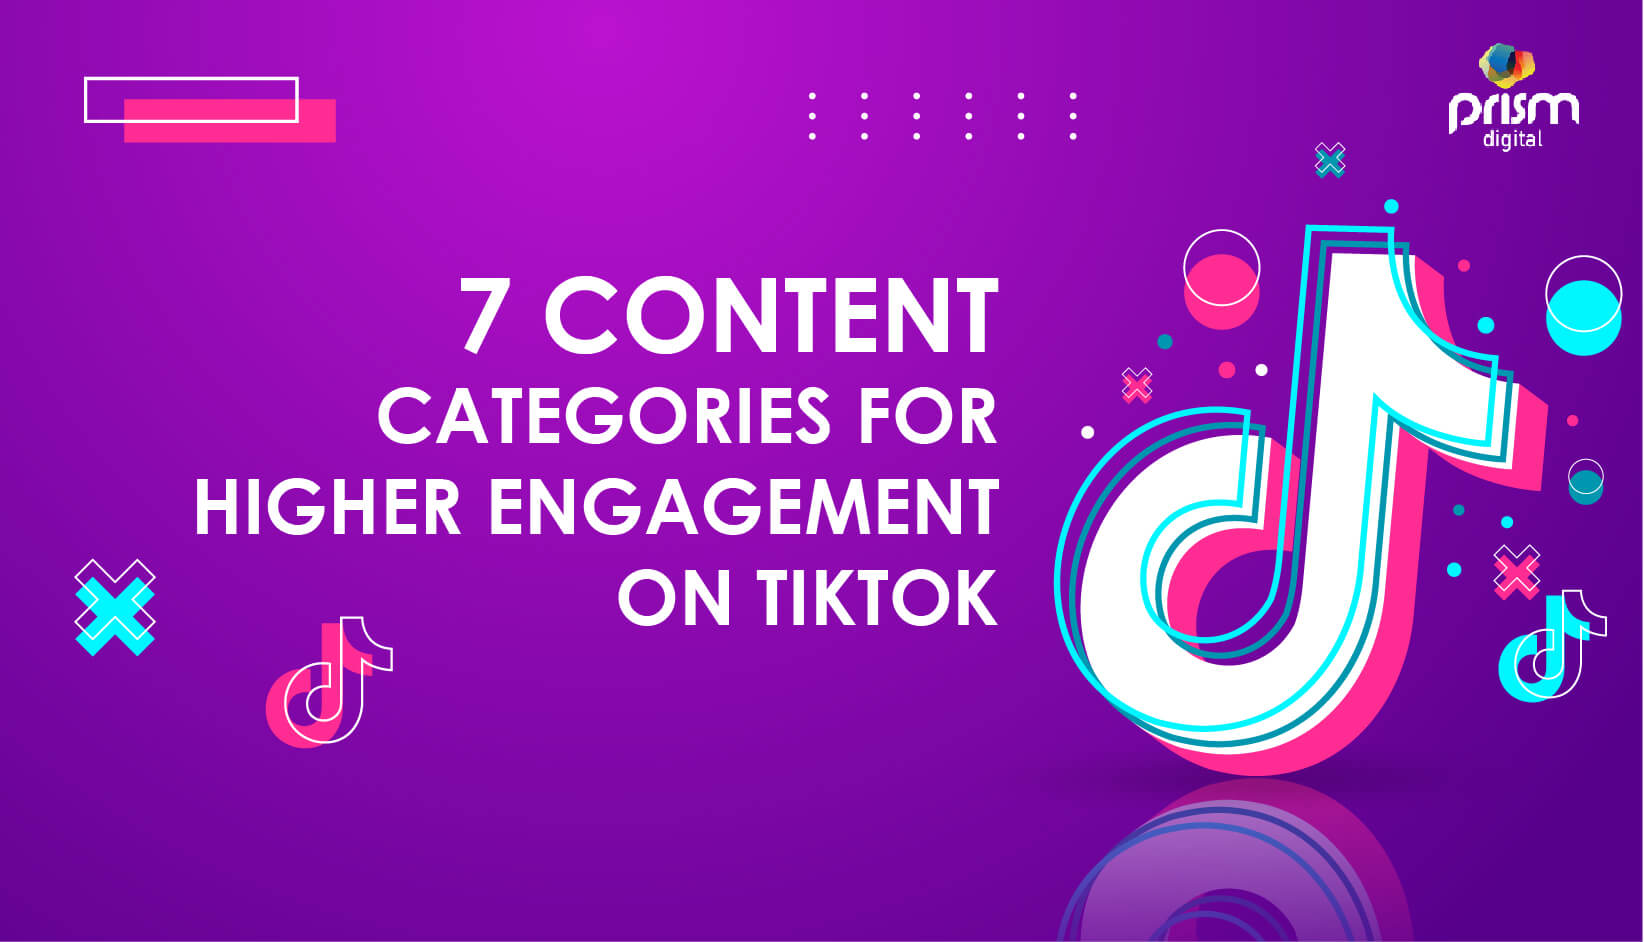 TikTok Content Ideas and Trends for 2021